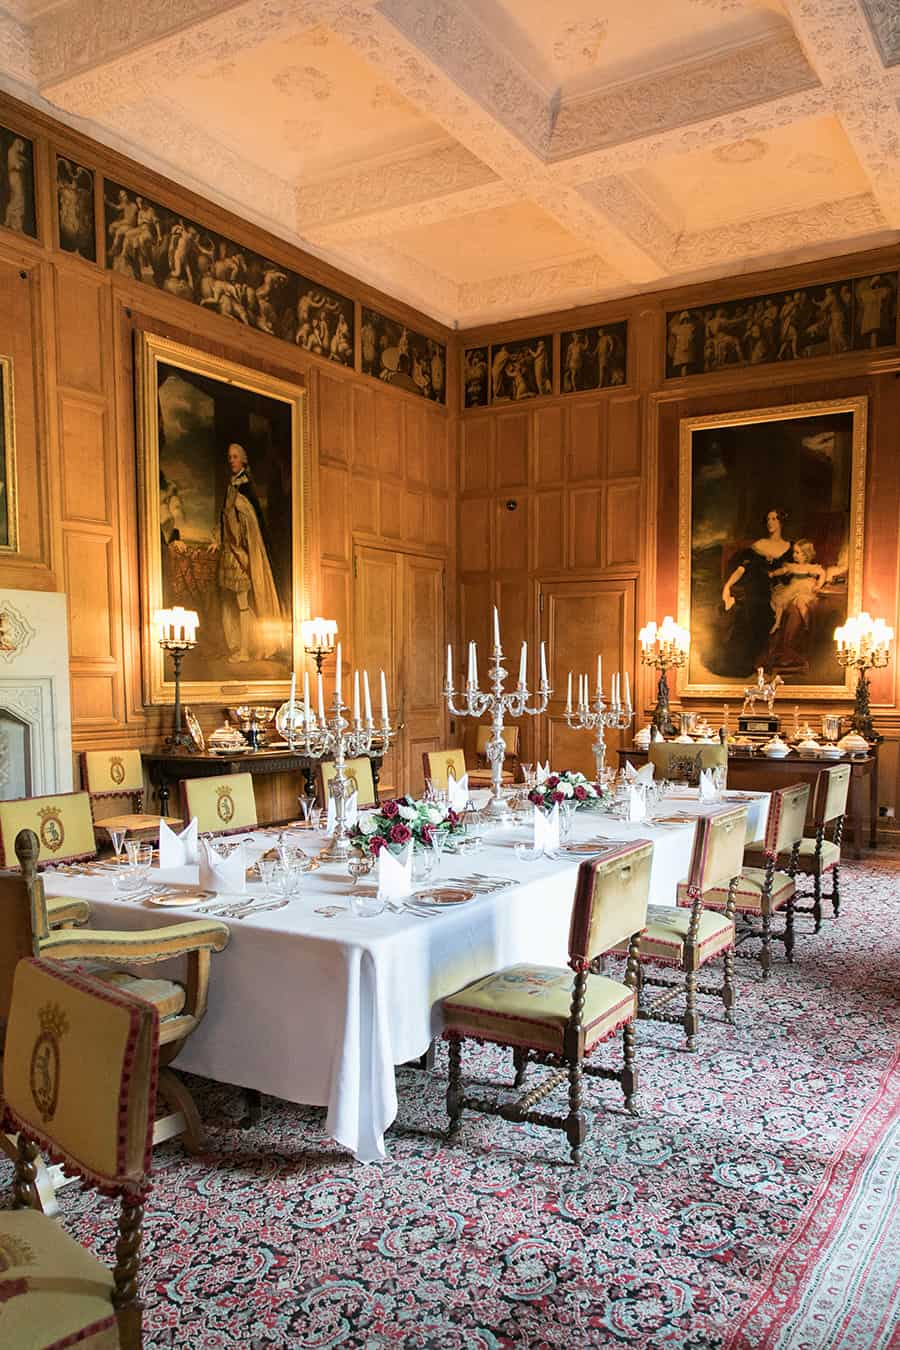 Interior picture of the dining room at Dunrobin Castle